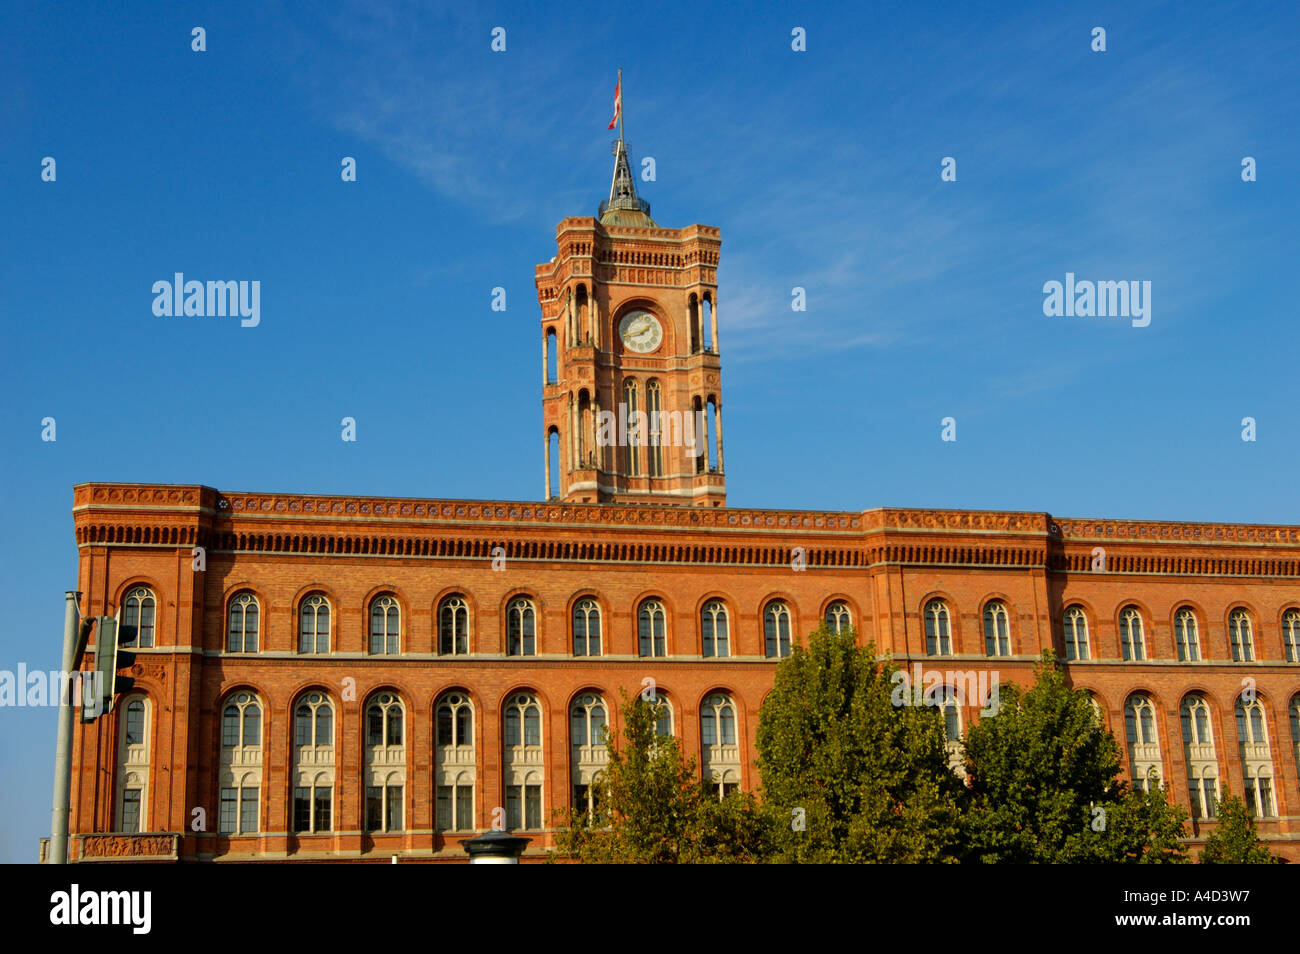 Rotes Rathaus Red Townhall Berlin Germany - Stock Image